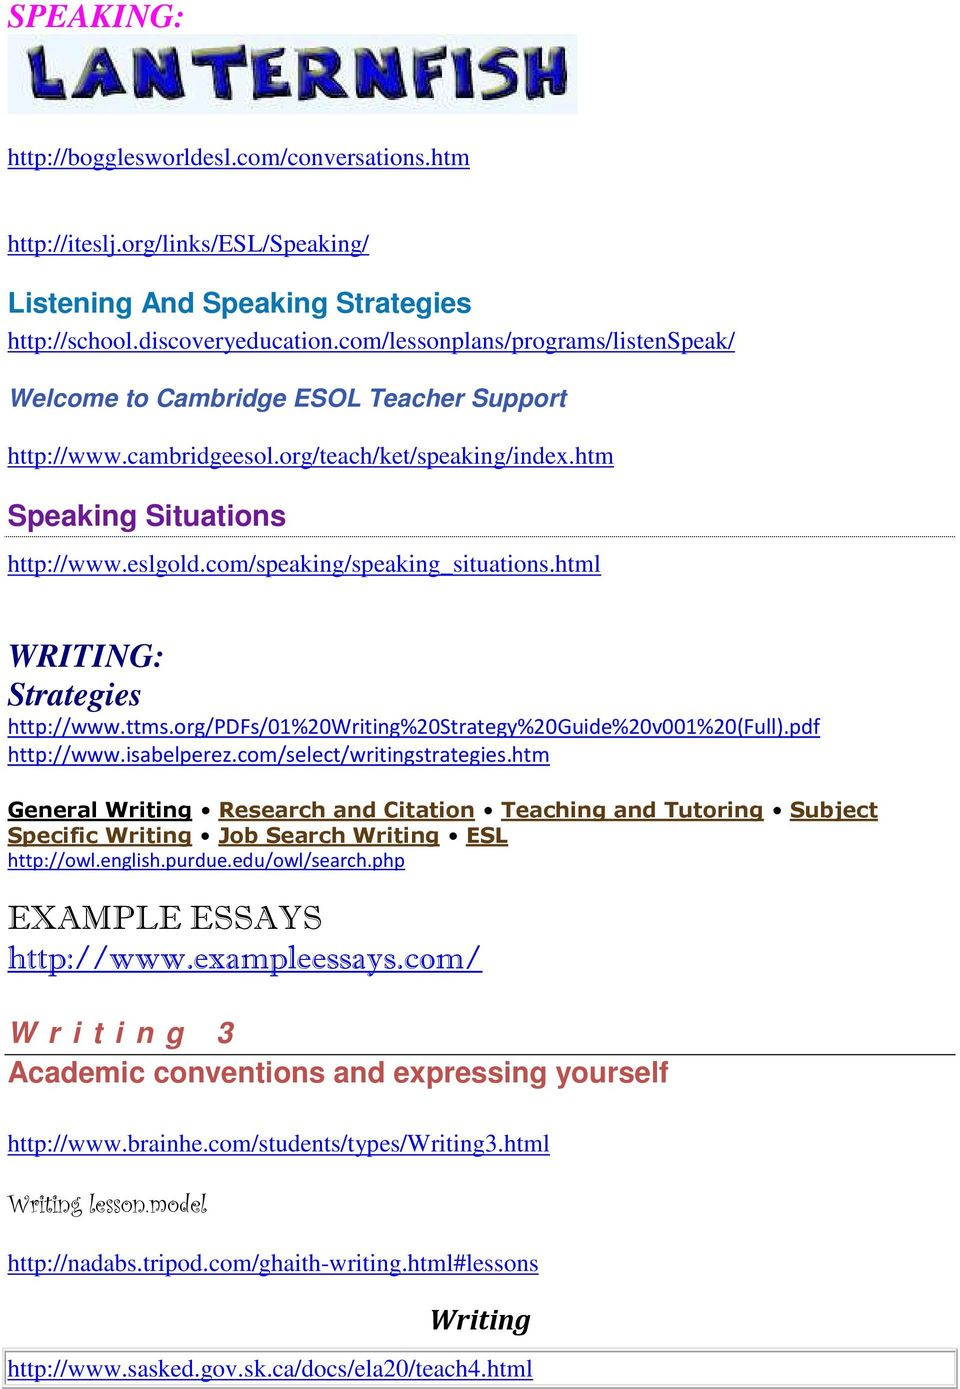 com/speaking/speaking_situations.html WRITING: Strategies http://www.ttms.org/pdfs/01%20writing%20strategy%20guide%20v001%20(full).pdf http://www.isabelperez.com/select/writingstrategies.